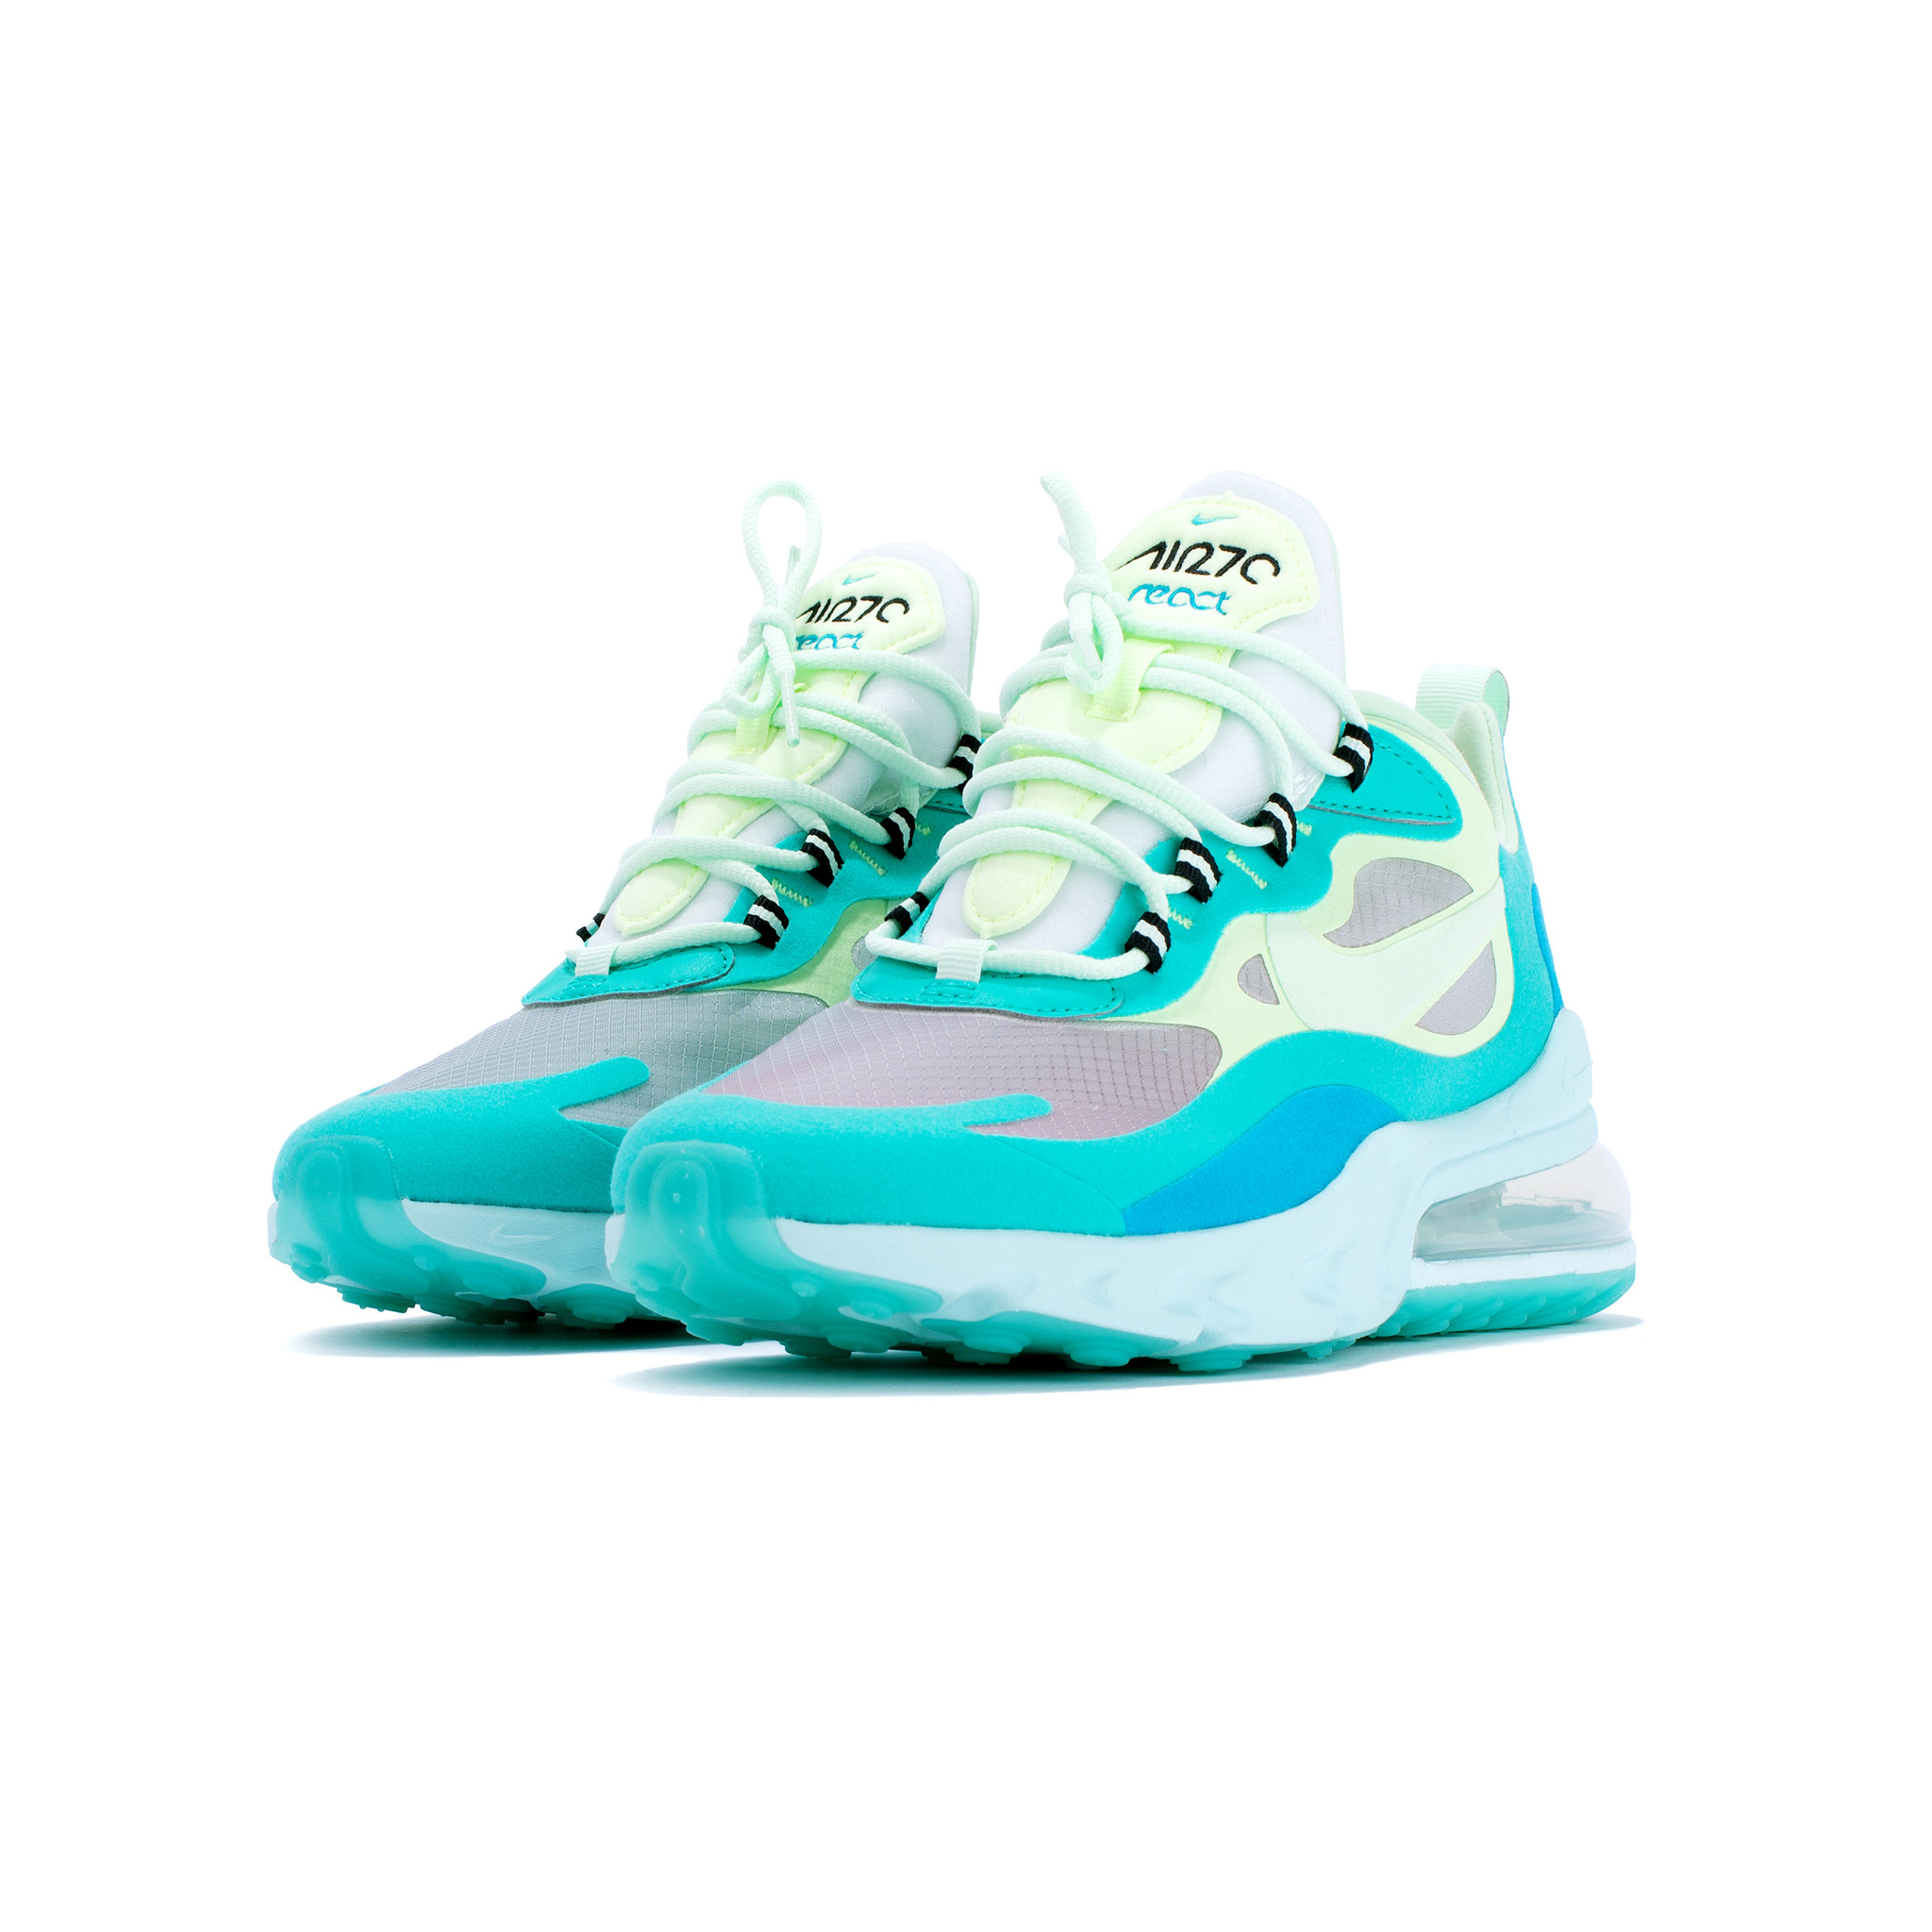 finest selection 5e773 797e4 NIKE AIR MAX 270 REACT AO4971 301